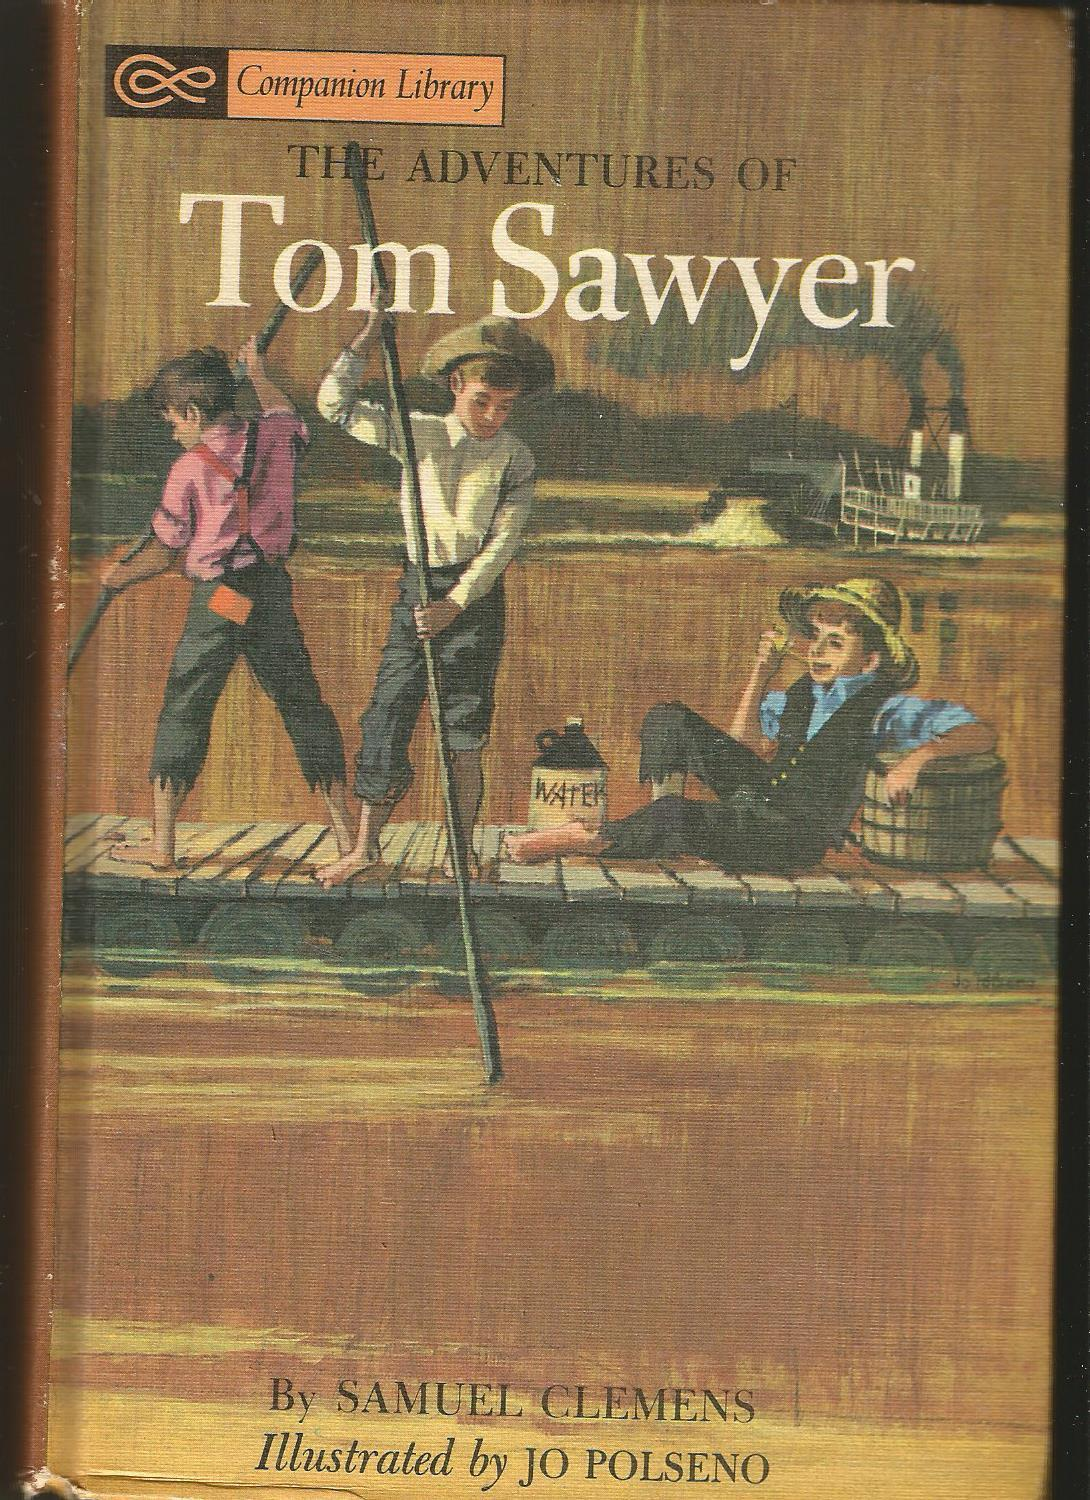 a paper on huckleberry finn and the adventures of tom sawyer The adventures of huckleberry finn by mark twain essay sample in the novel the adventures of huckleberry finn mark twain uses a specific literary technique, a first person personal point of view, to unveil the message of the novel and create a unique storytelling.